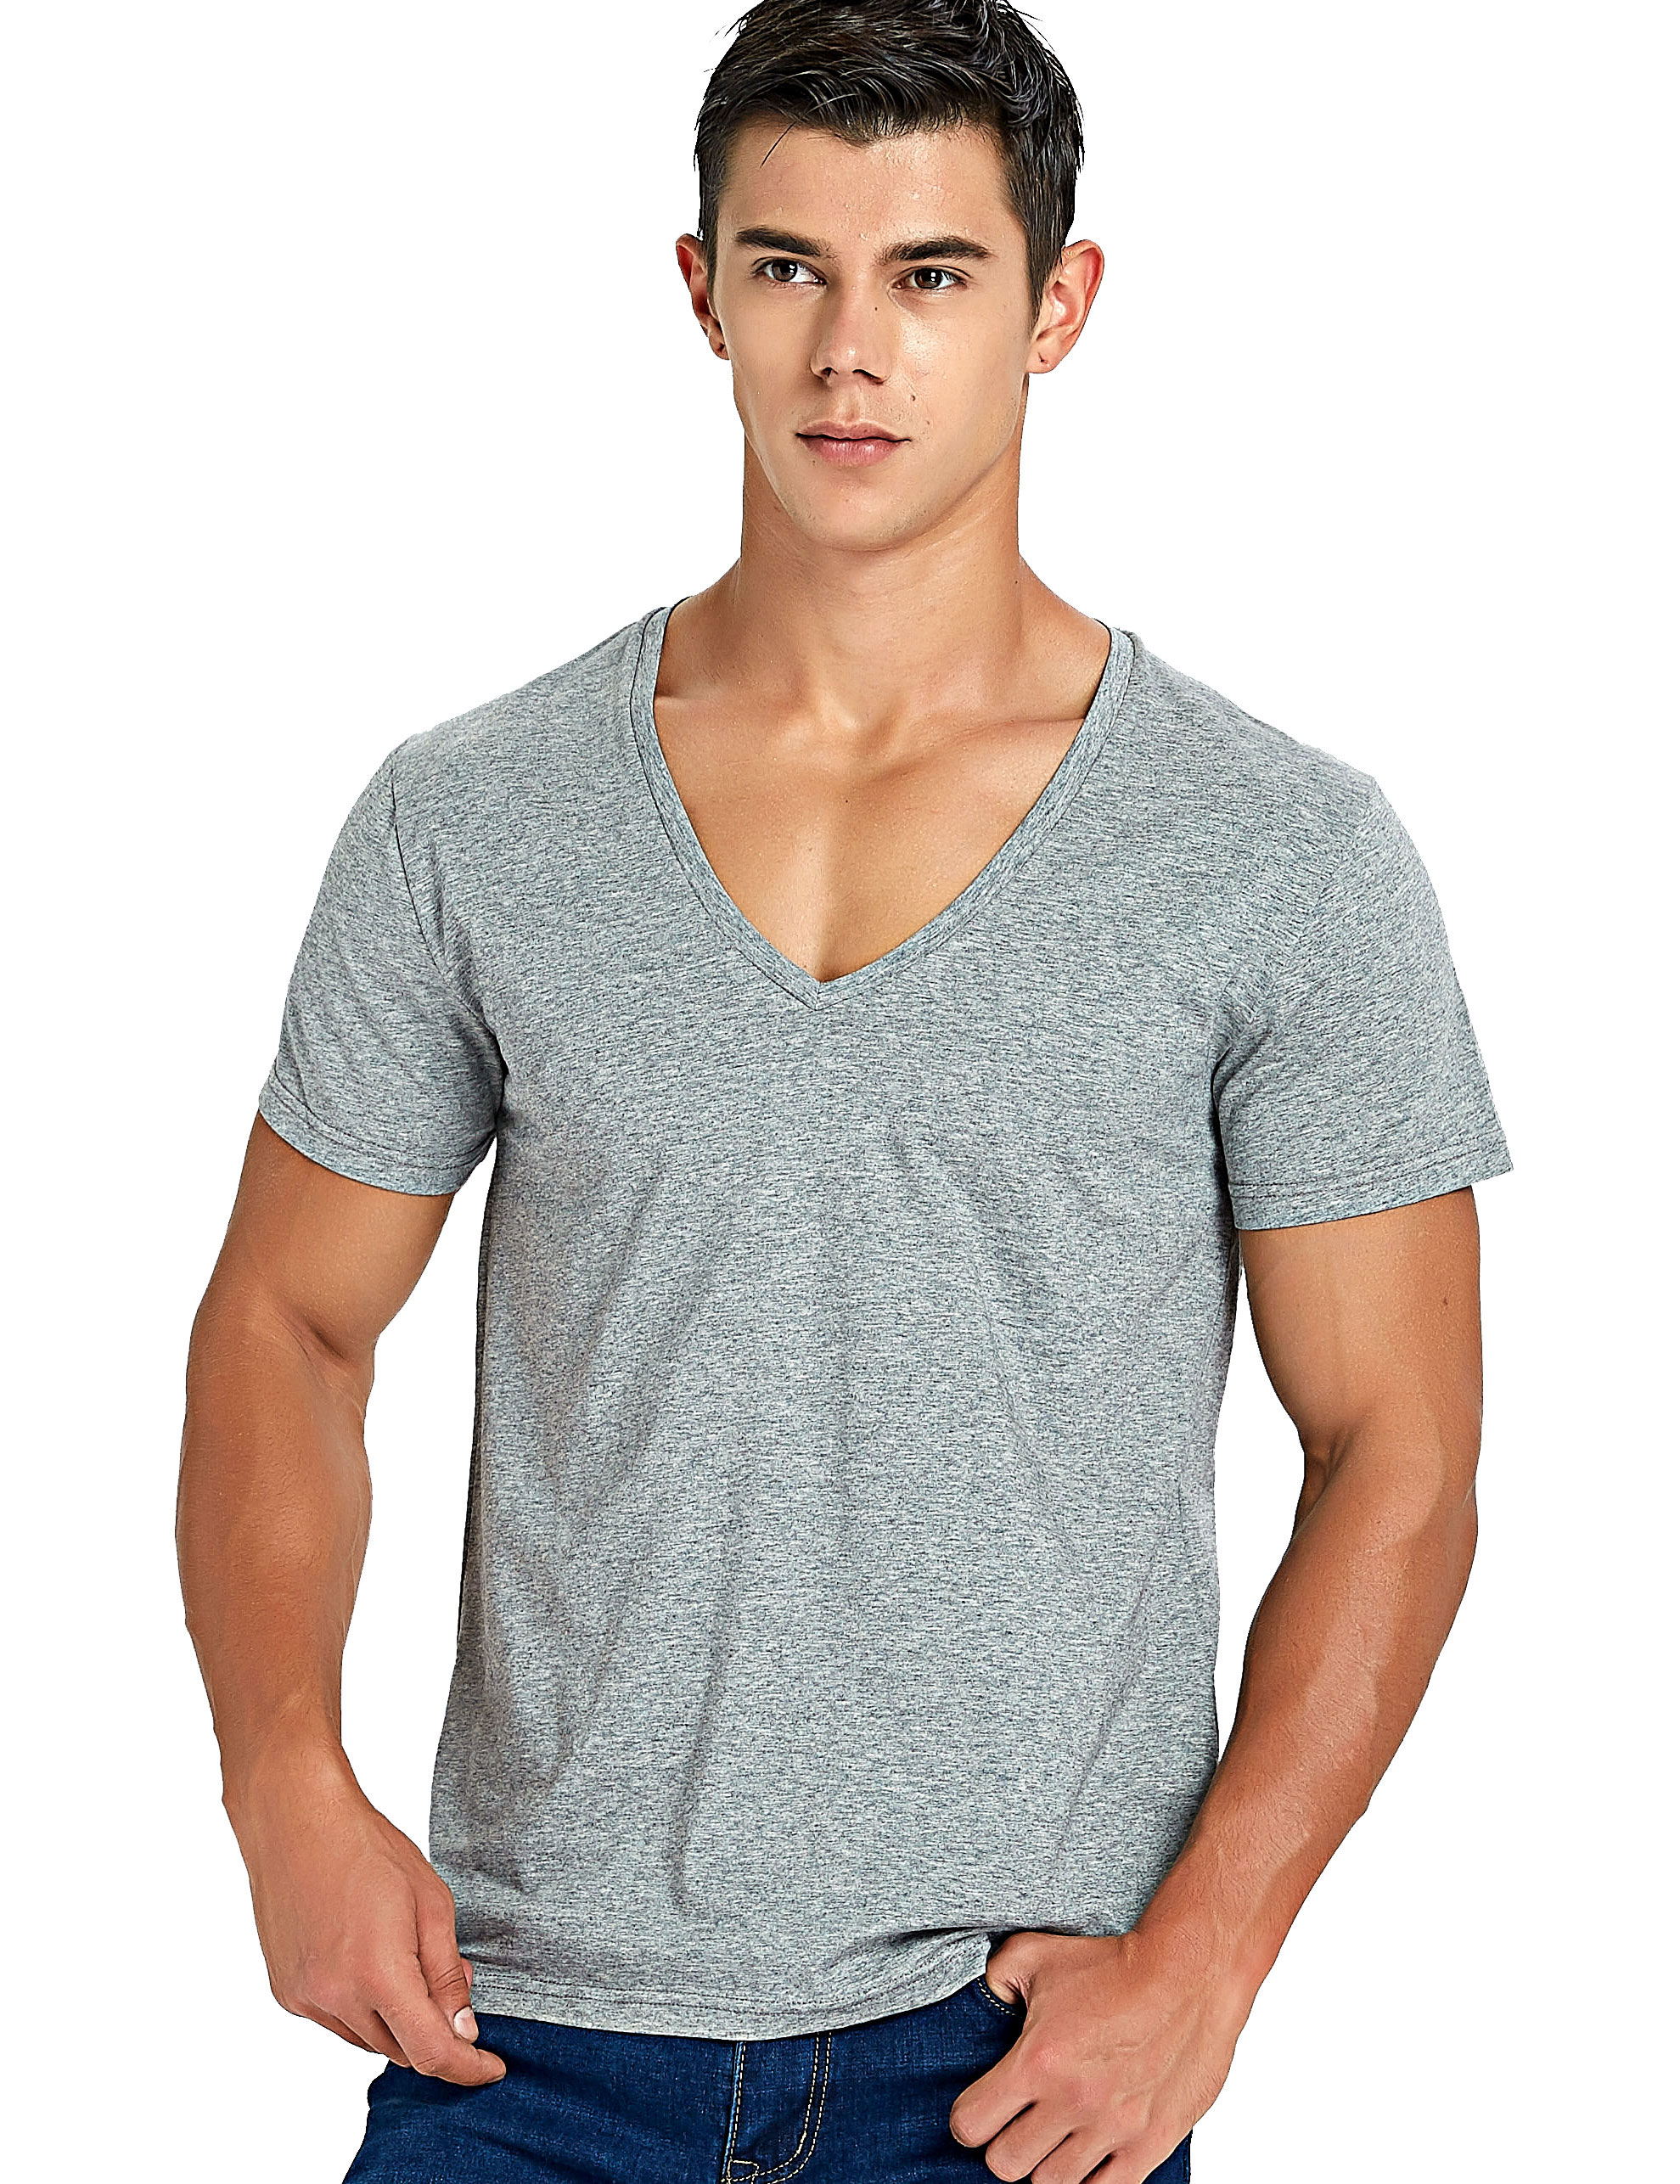 3788eb5007 Stretch Deep V Neck T Shirt for Men Low Cut Vneck Vee Top Tees Slim Fit